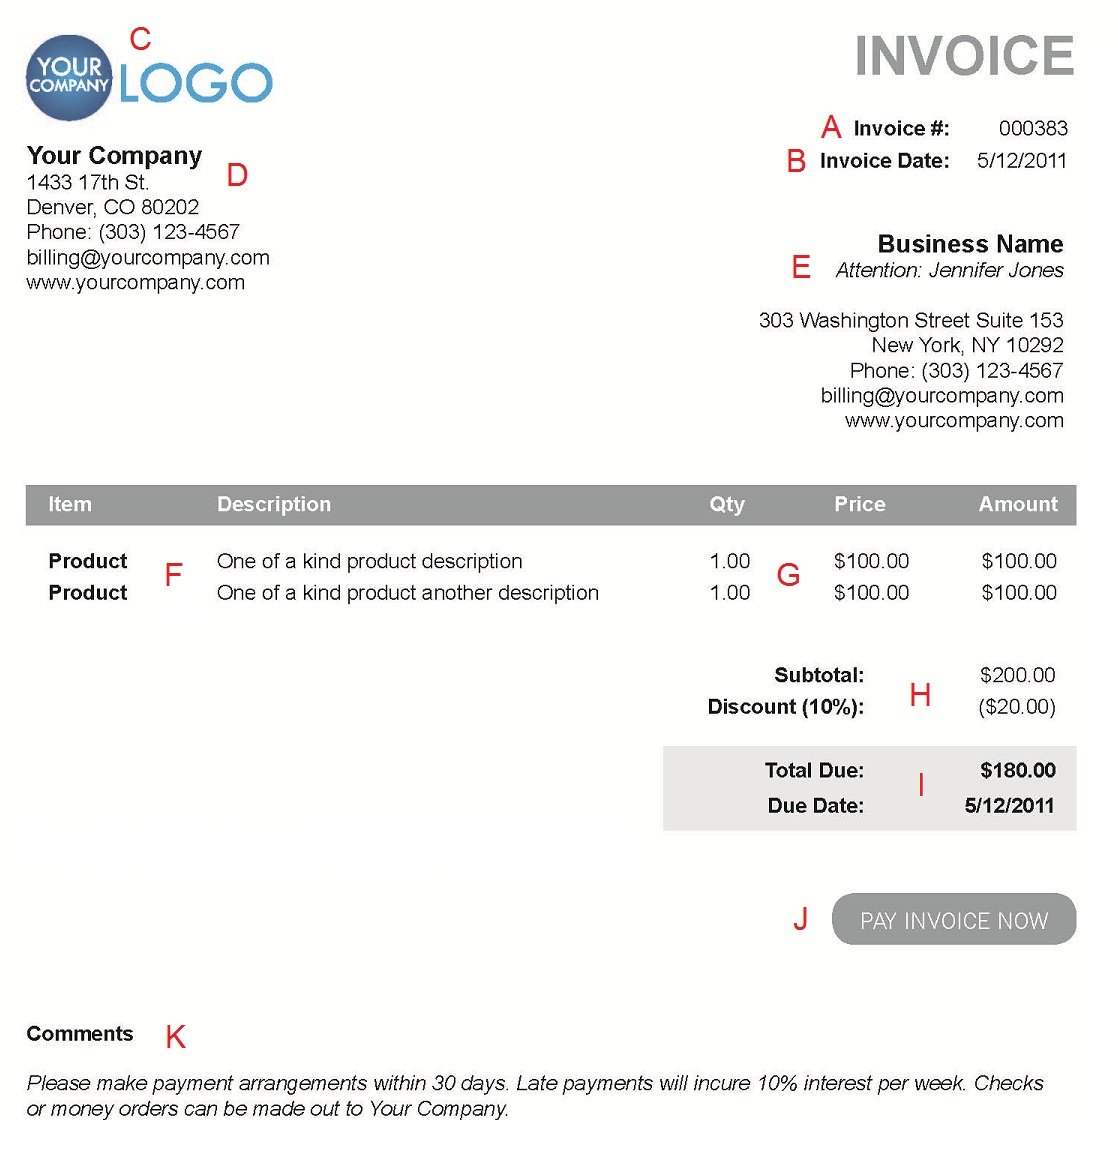 Coachoutletonlineplusus  Outstanding The  Different Sections Of An Electronic Payment Invoice With Hot A  With Astonishing Invoice For Rent Also Invoice Signature In Addition Invoice Business And Find Invoice Price Of New Car As Well As Free Invoice Template For Excel Additionally Freeware Invoice Software From Paysimplecom With Coachoutletonlineplusus  Hot The  Different Sections Of An Electronic Payment Invoice With Astonishing A  And Outstanding Invoice For Rent Also Invoice Signature In Addition Invoice Business From Paysimplecom